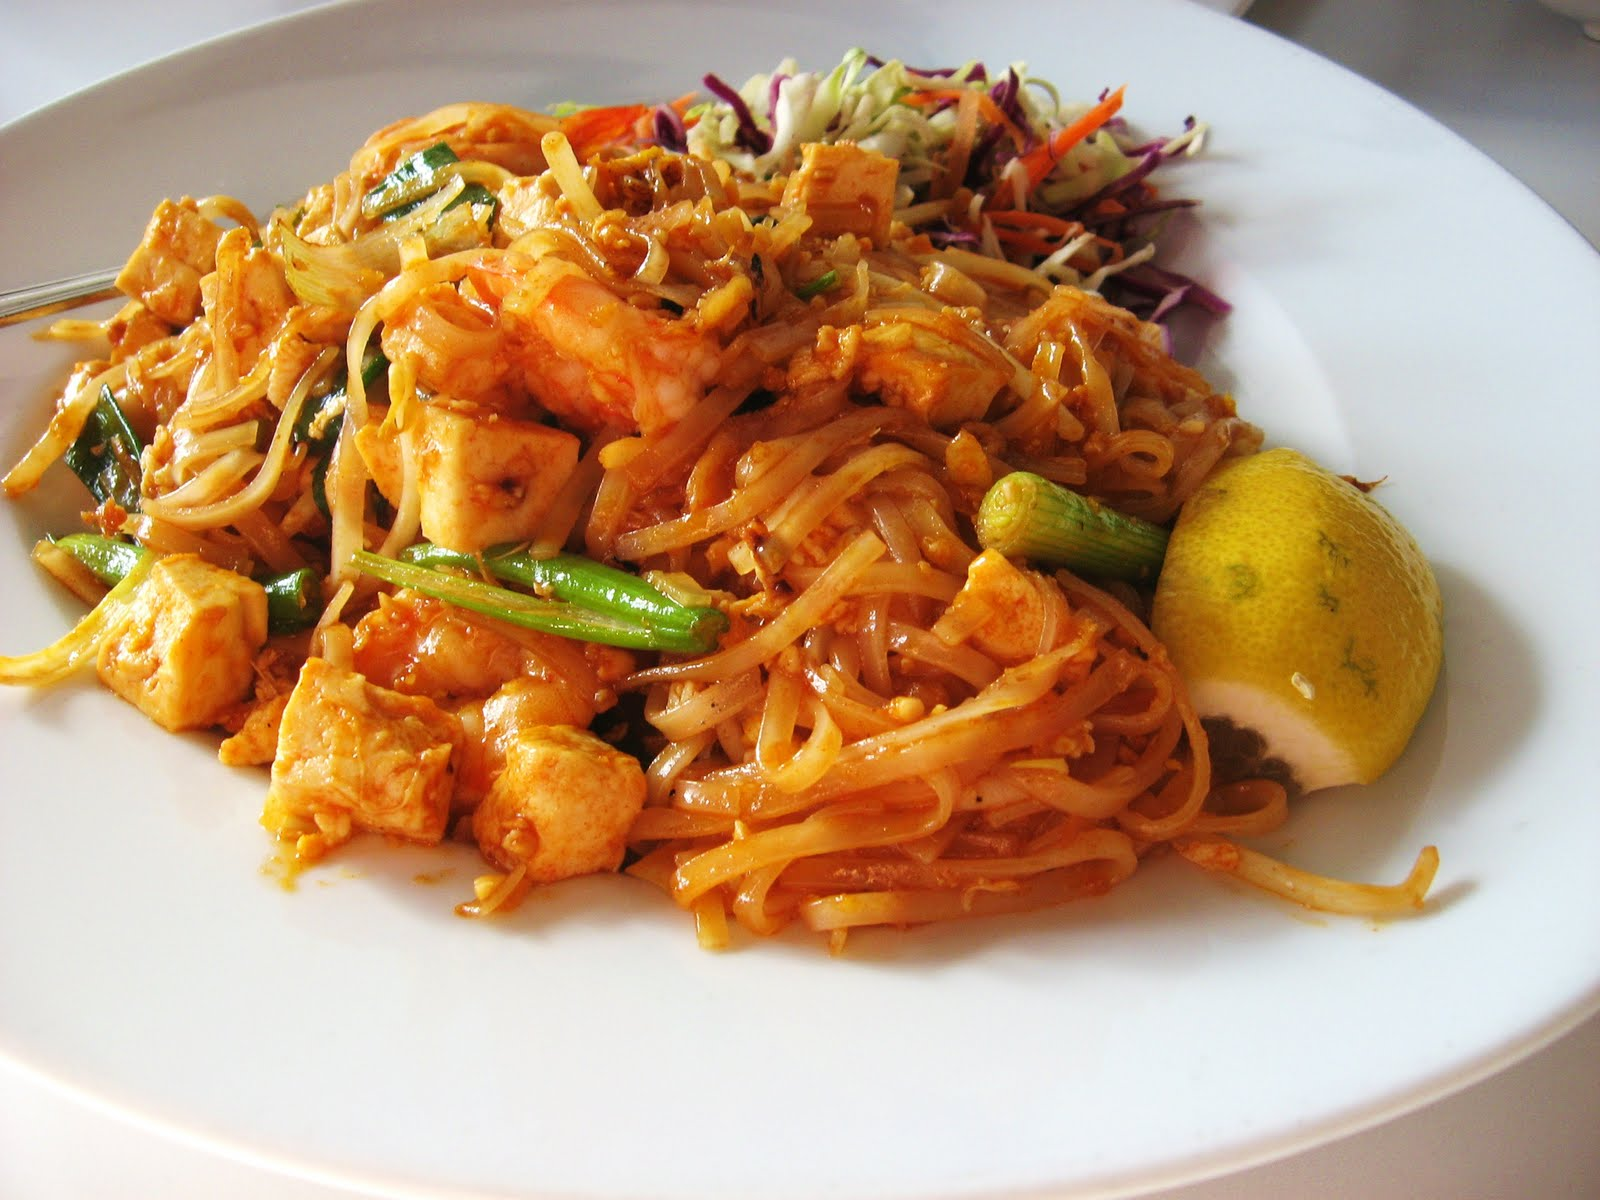 Pad thai recipes dishmaps - Thailand cuisine recipes ...